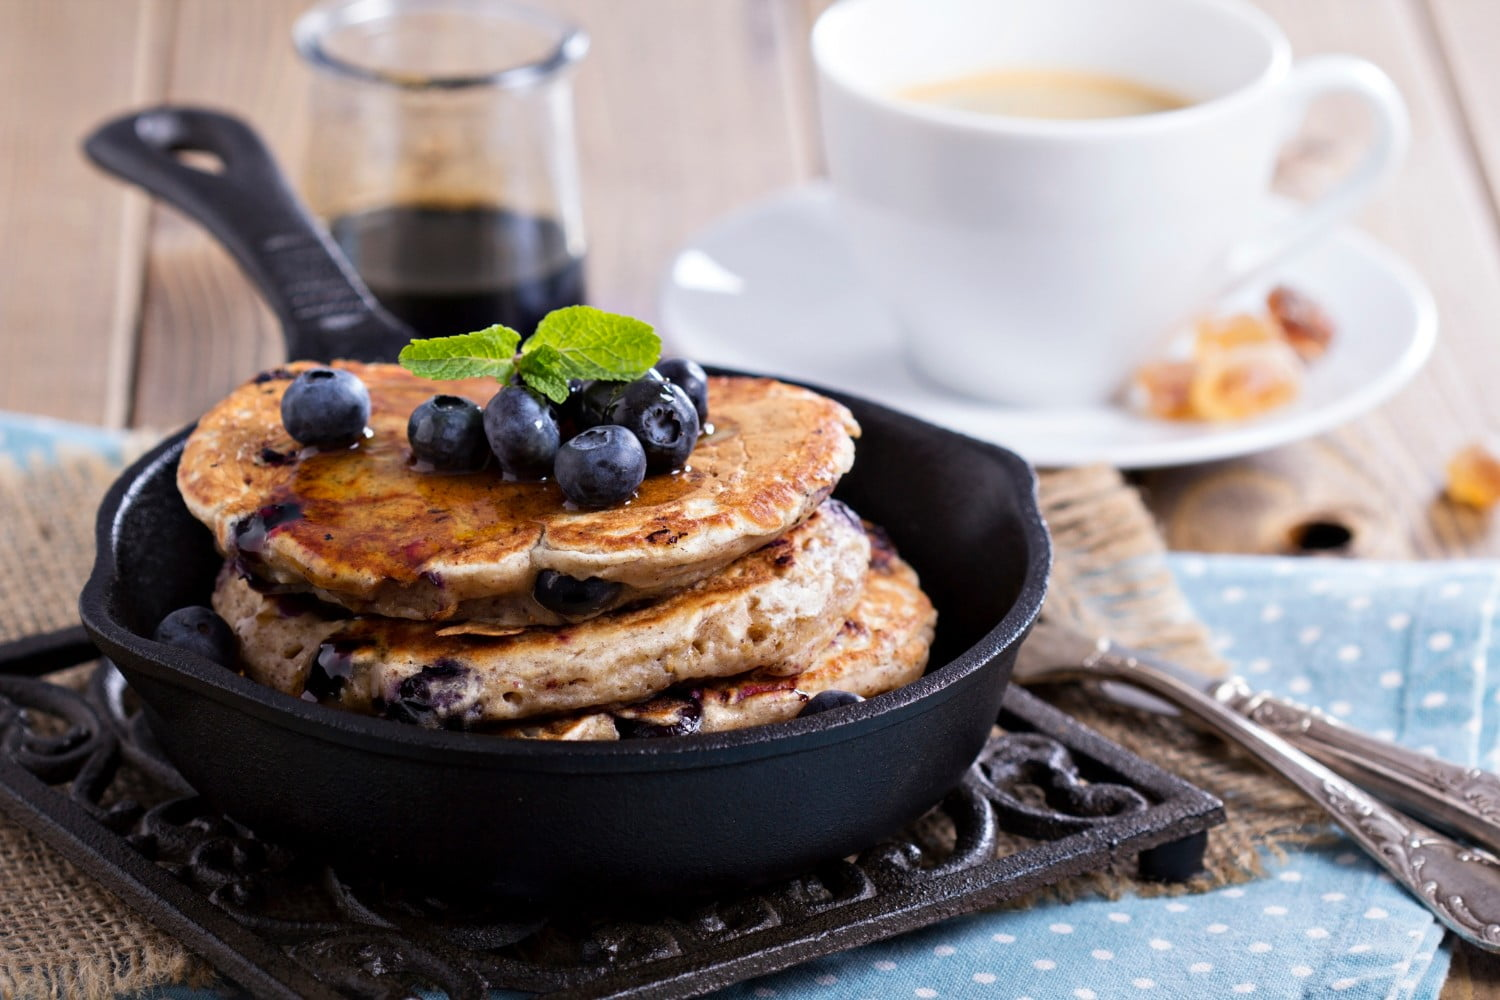 Blueberry pancakes at the Colonial Dining Room, one of the best Natural Bridge restaurants